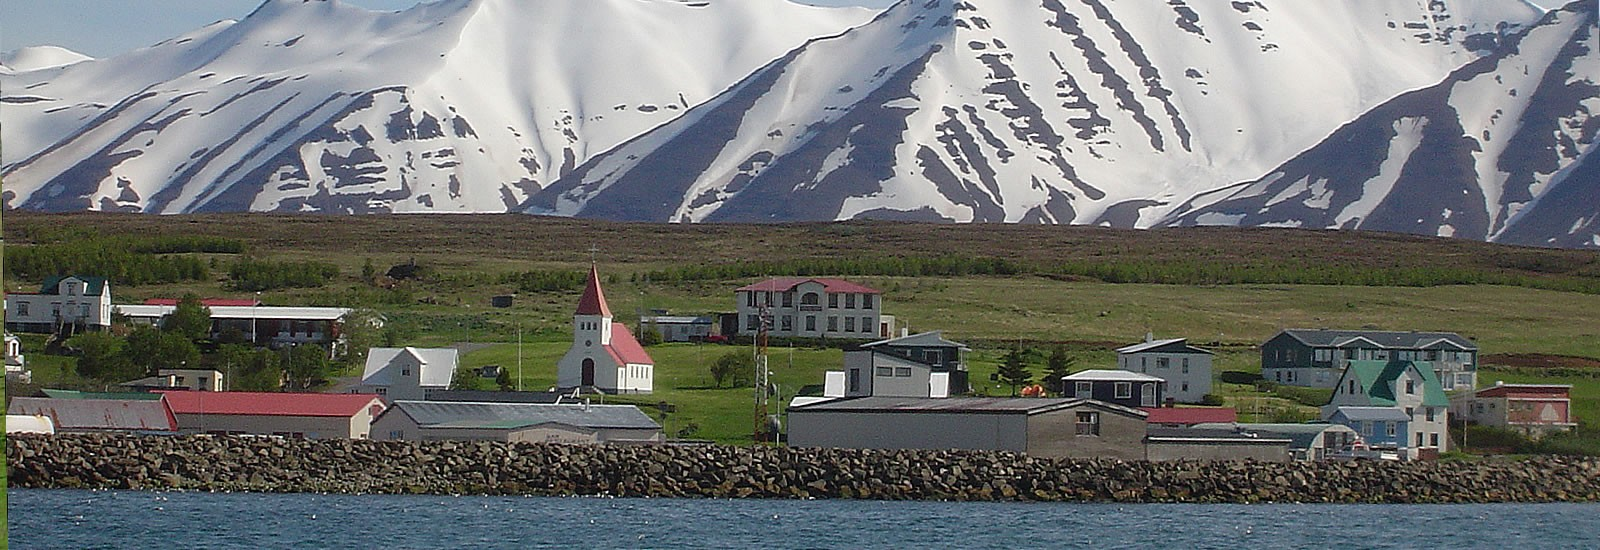 Iceland Tour June 4-13, 2016 Nature Tour, Birding Tour, Mark Suomala